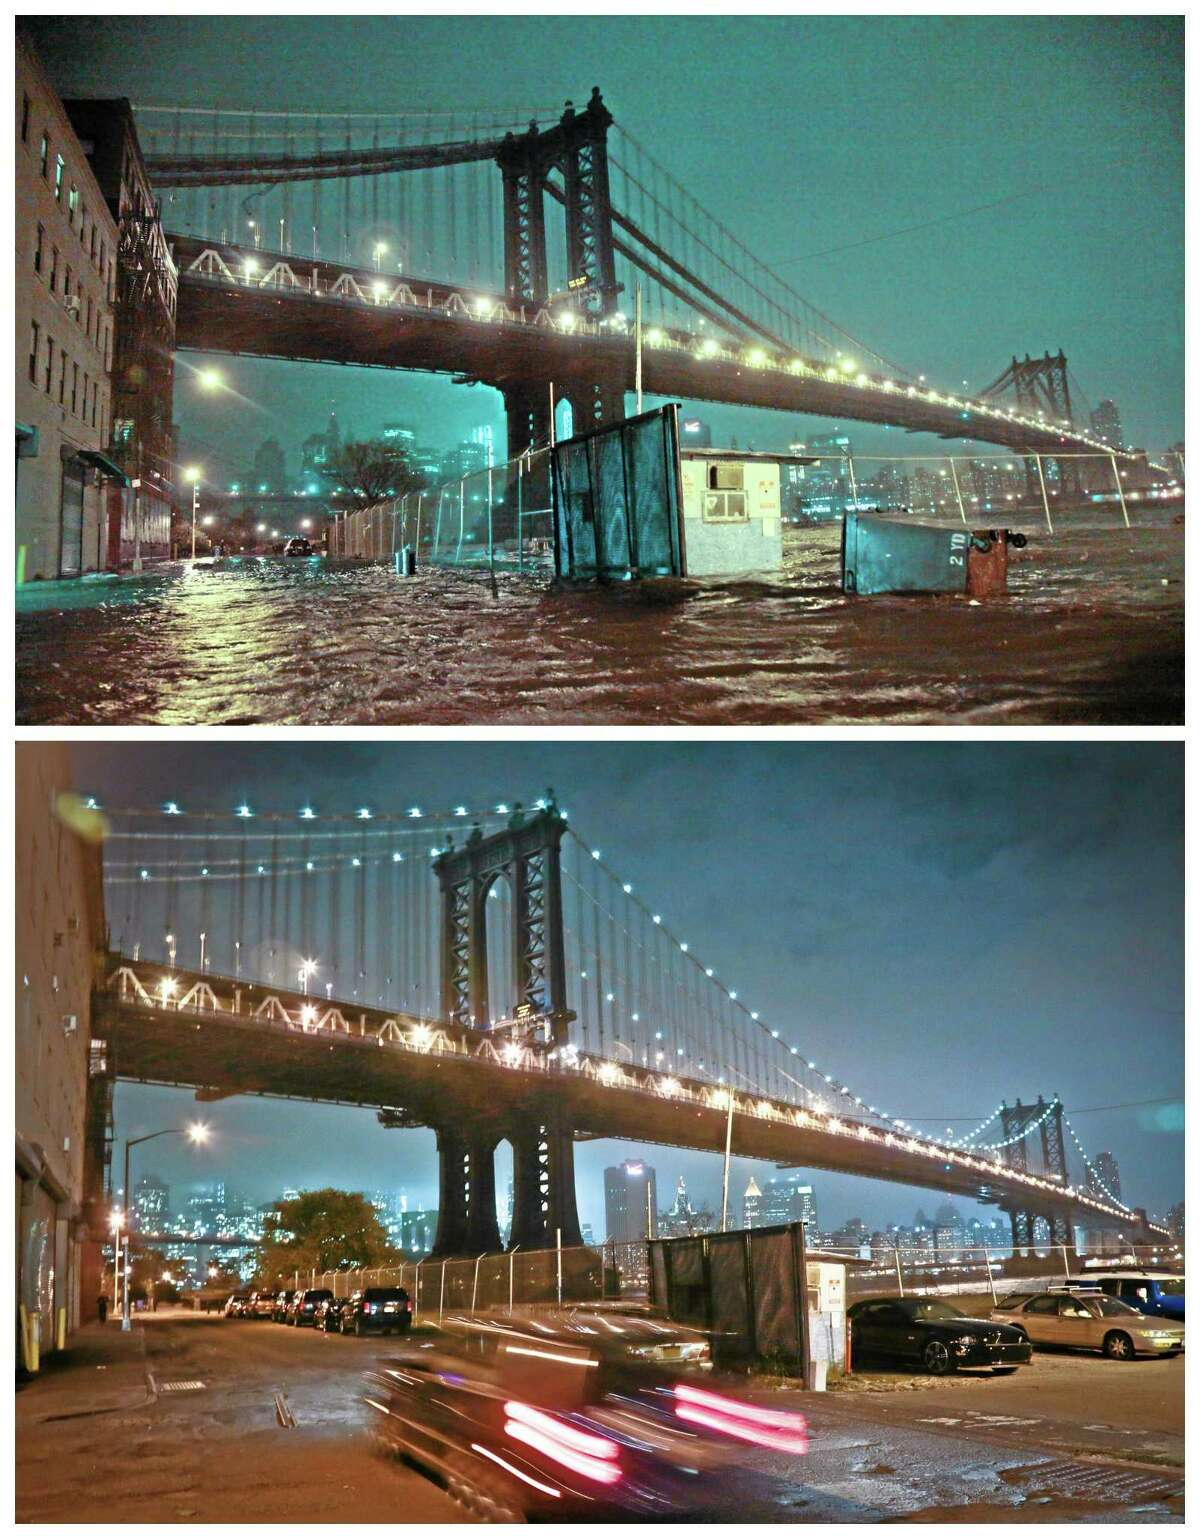 This combination of Monday, Oct. 29, 2012 and Thursday, Oct. 17, 2013 photos shows flooded streets under the Manhattan Bridge in the Dumbo section of Brooklyn, New York in the wake of Superstorm Sandy and the same site nearly a year later. (AP Photo/Bebeto Matthews)